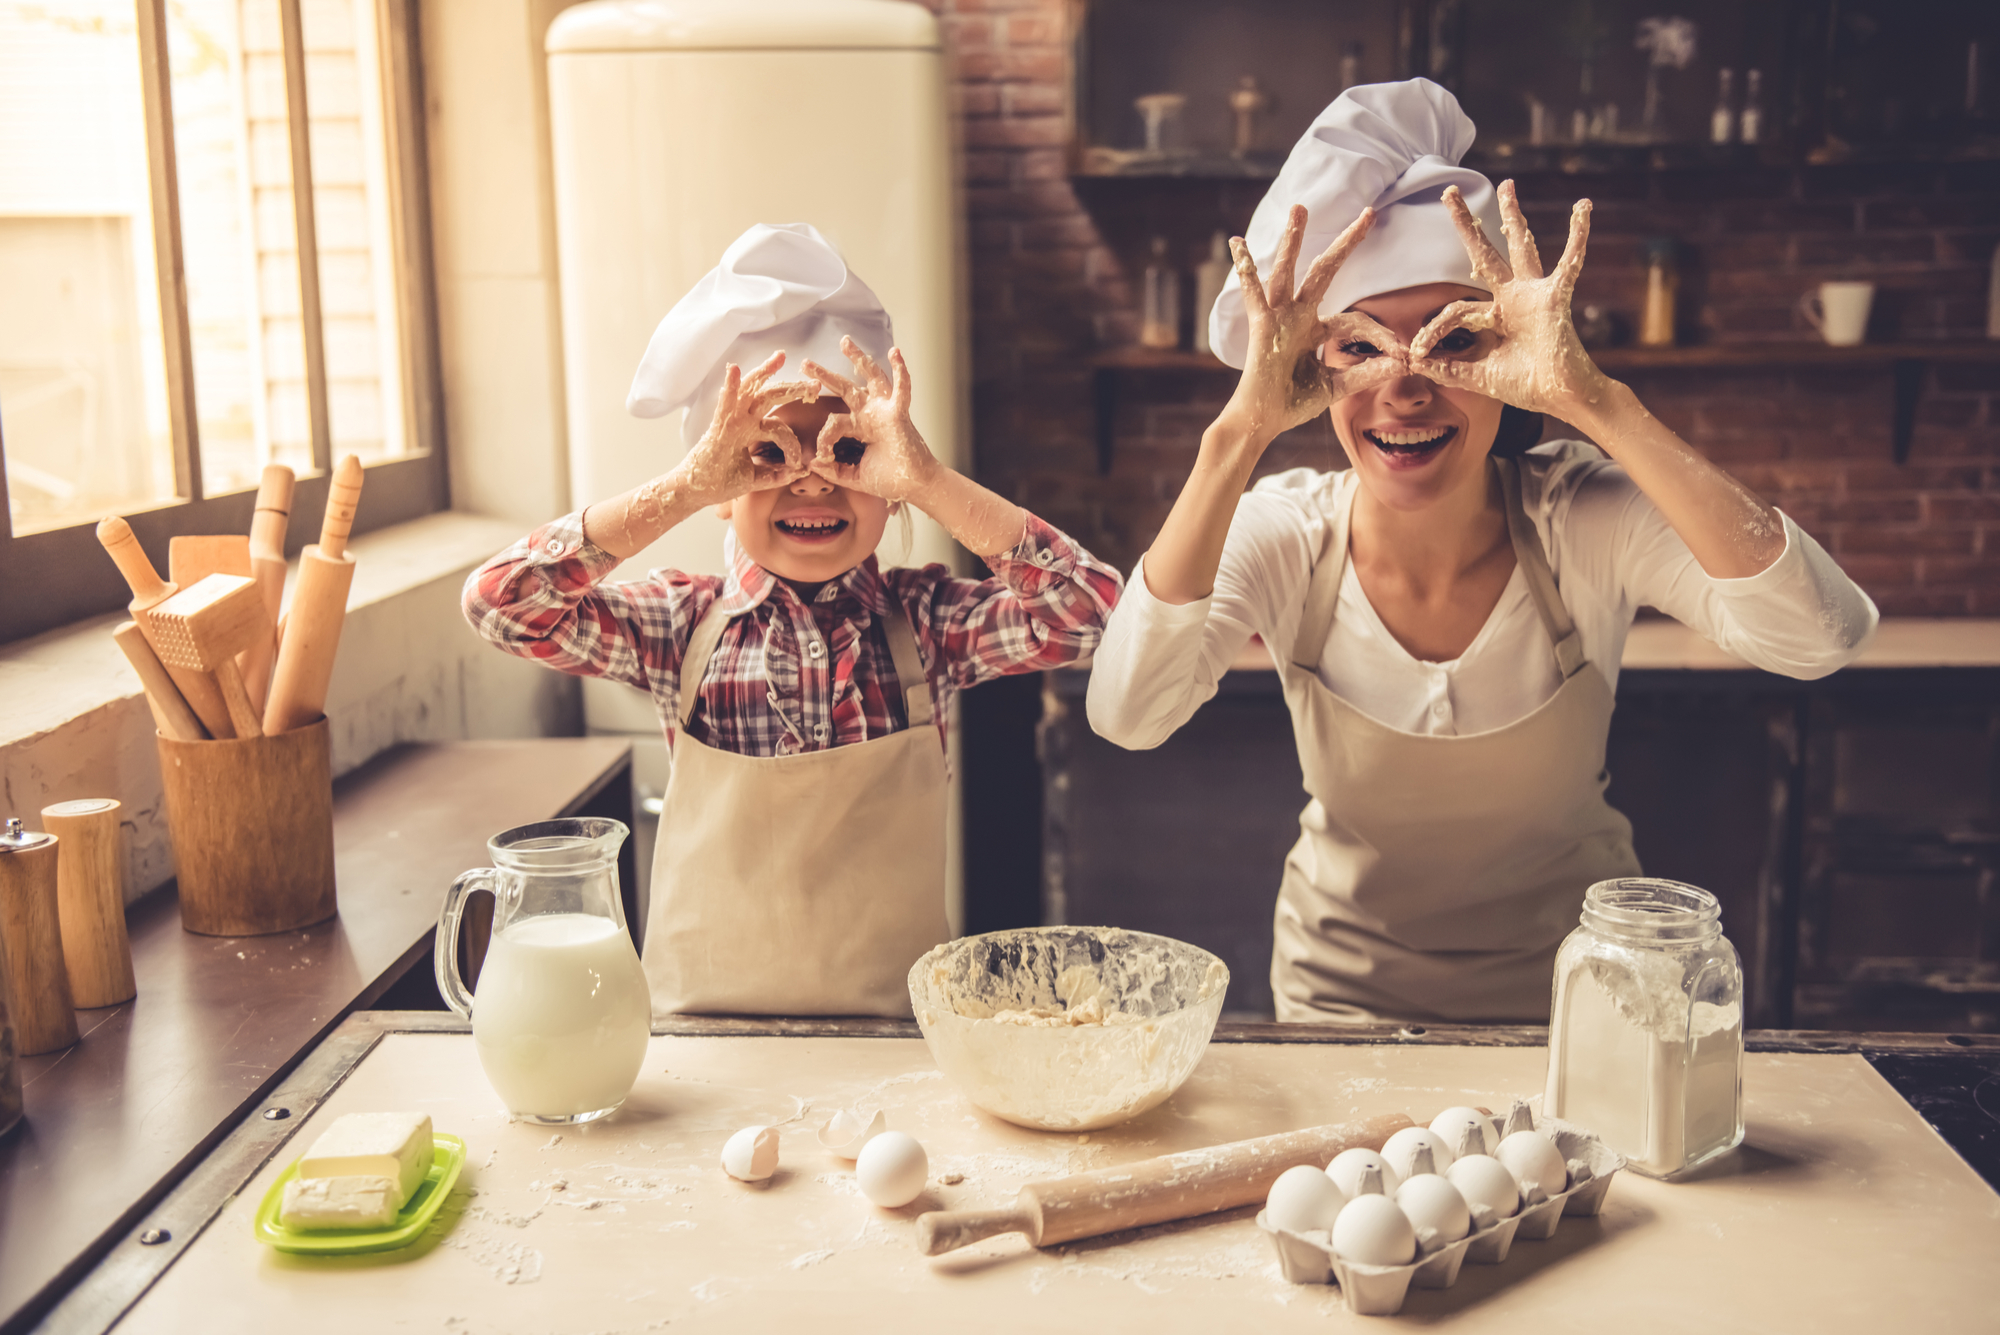 woman girl baking